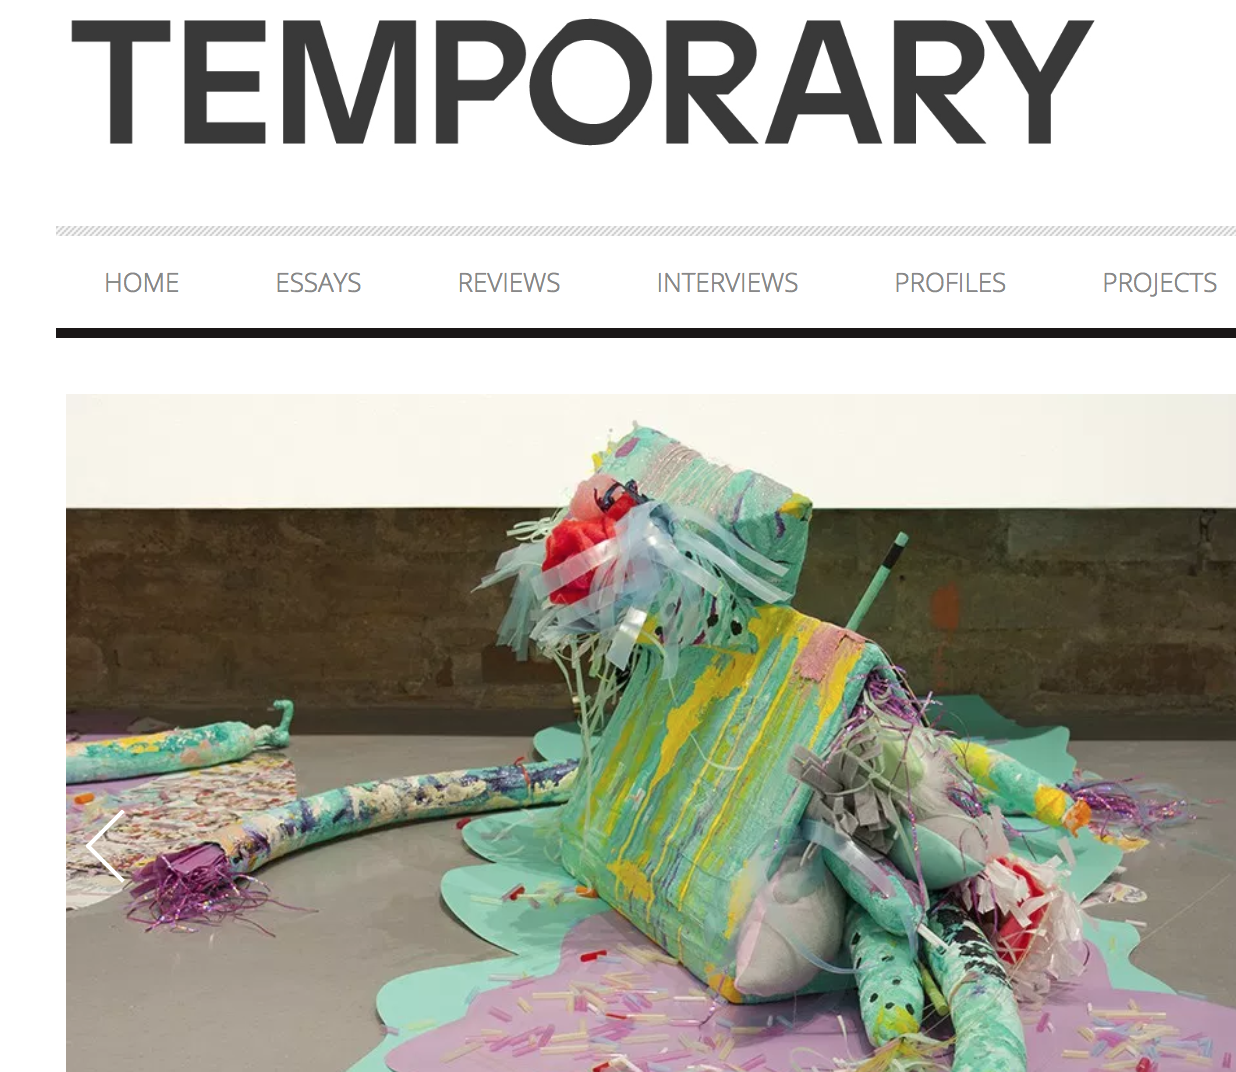 Interview with Temporary, 2015 -